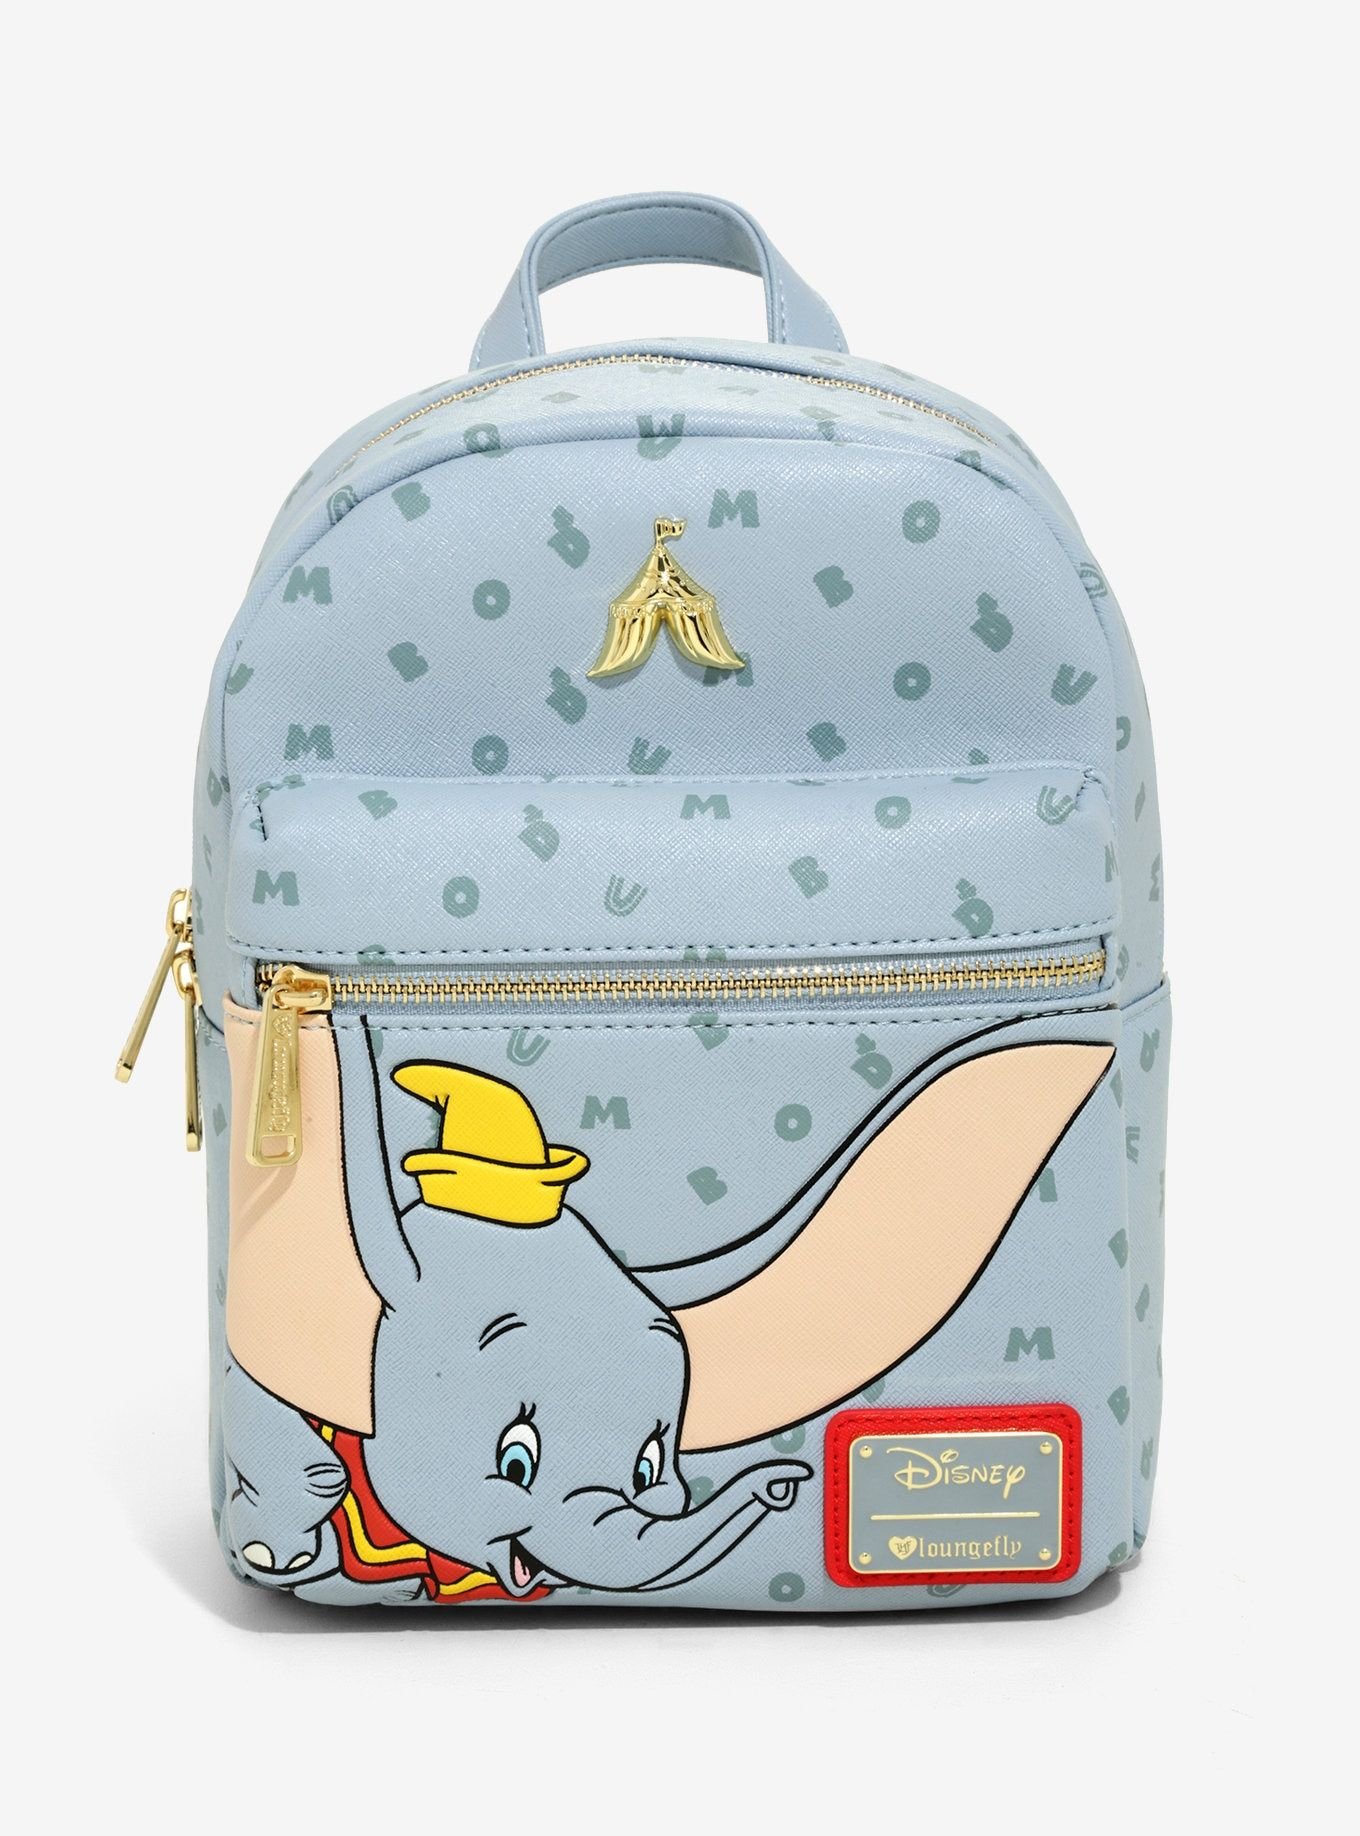 0d7397ca0f67 Loungefly Disney Dumbo Letters Mini Backpack - BoxLunch Exclusive in ...